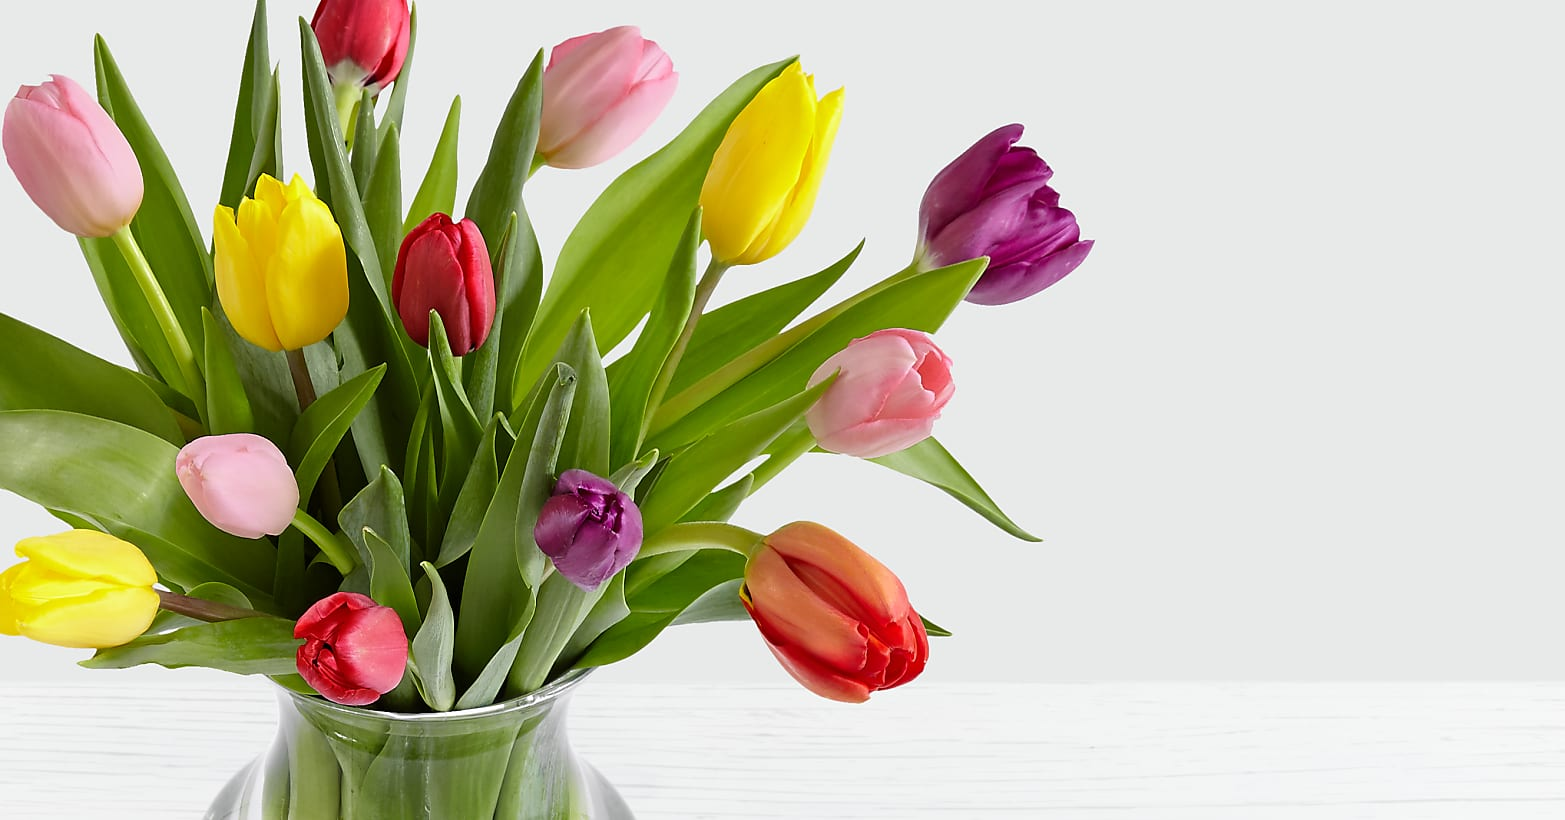 15 Multi-Colored Tulips - Image 3 Of 4